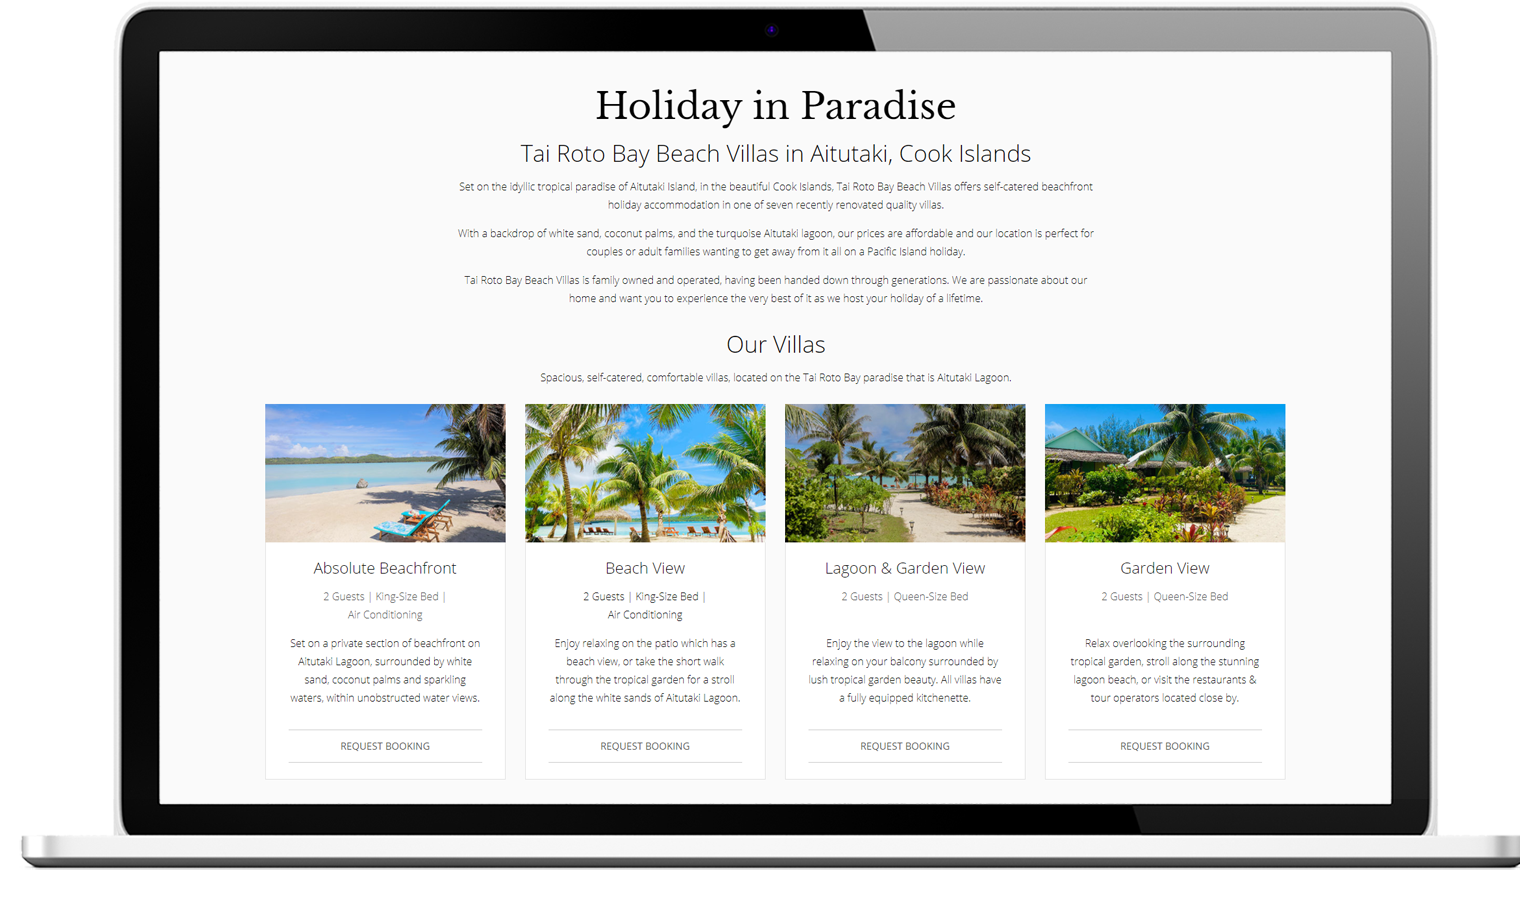 Tai Roto Bay Beach Villas website design laptop - Tai Roto Bay Beach Villas